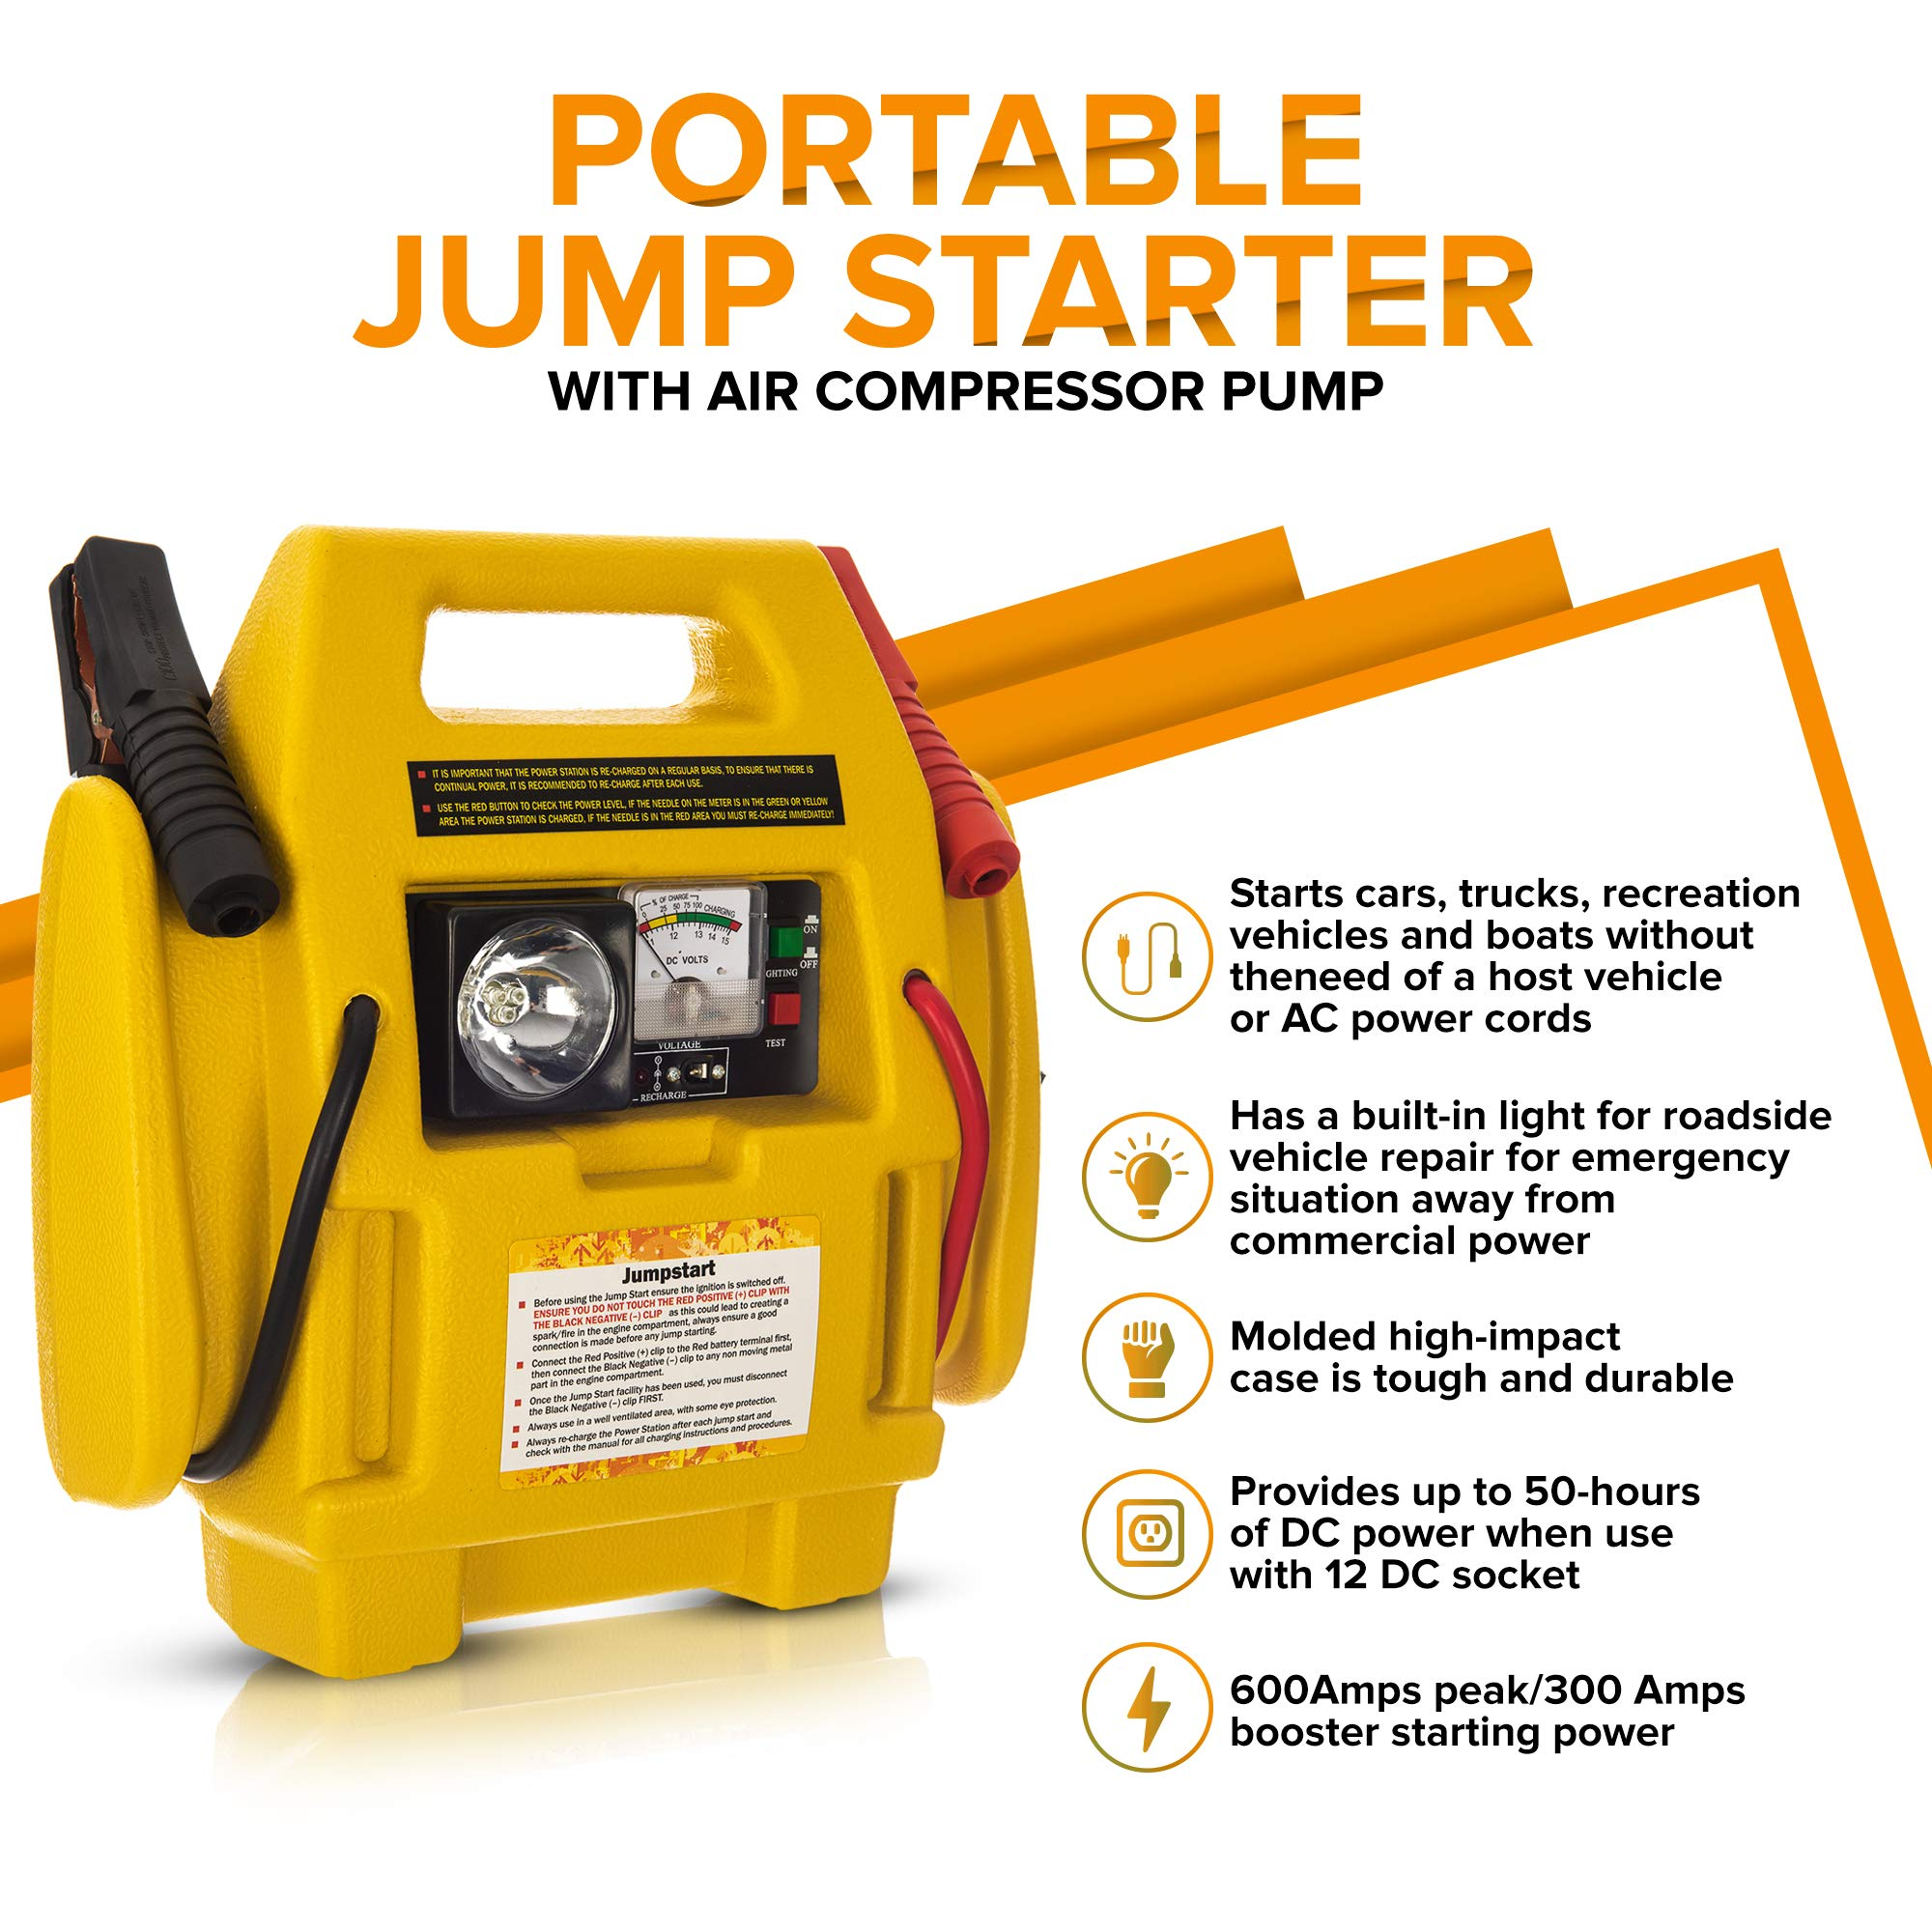 Fifth Gear® 4 in 1 12V Portable Car Jump Starter Air Compressor Battery Start Booster Charger Leads - Buy Online in Bahamas. | fifth gear Products in Bahamas - See Prices, Reviews